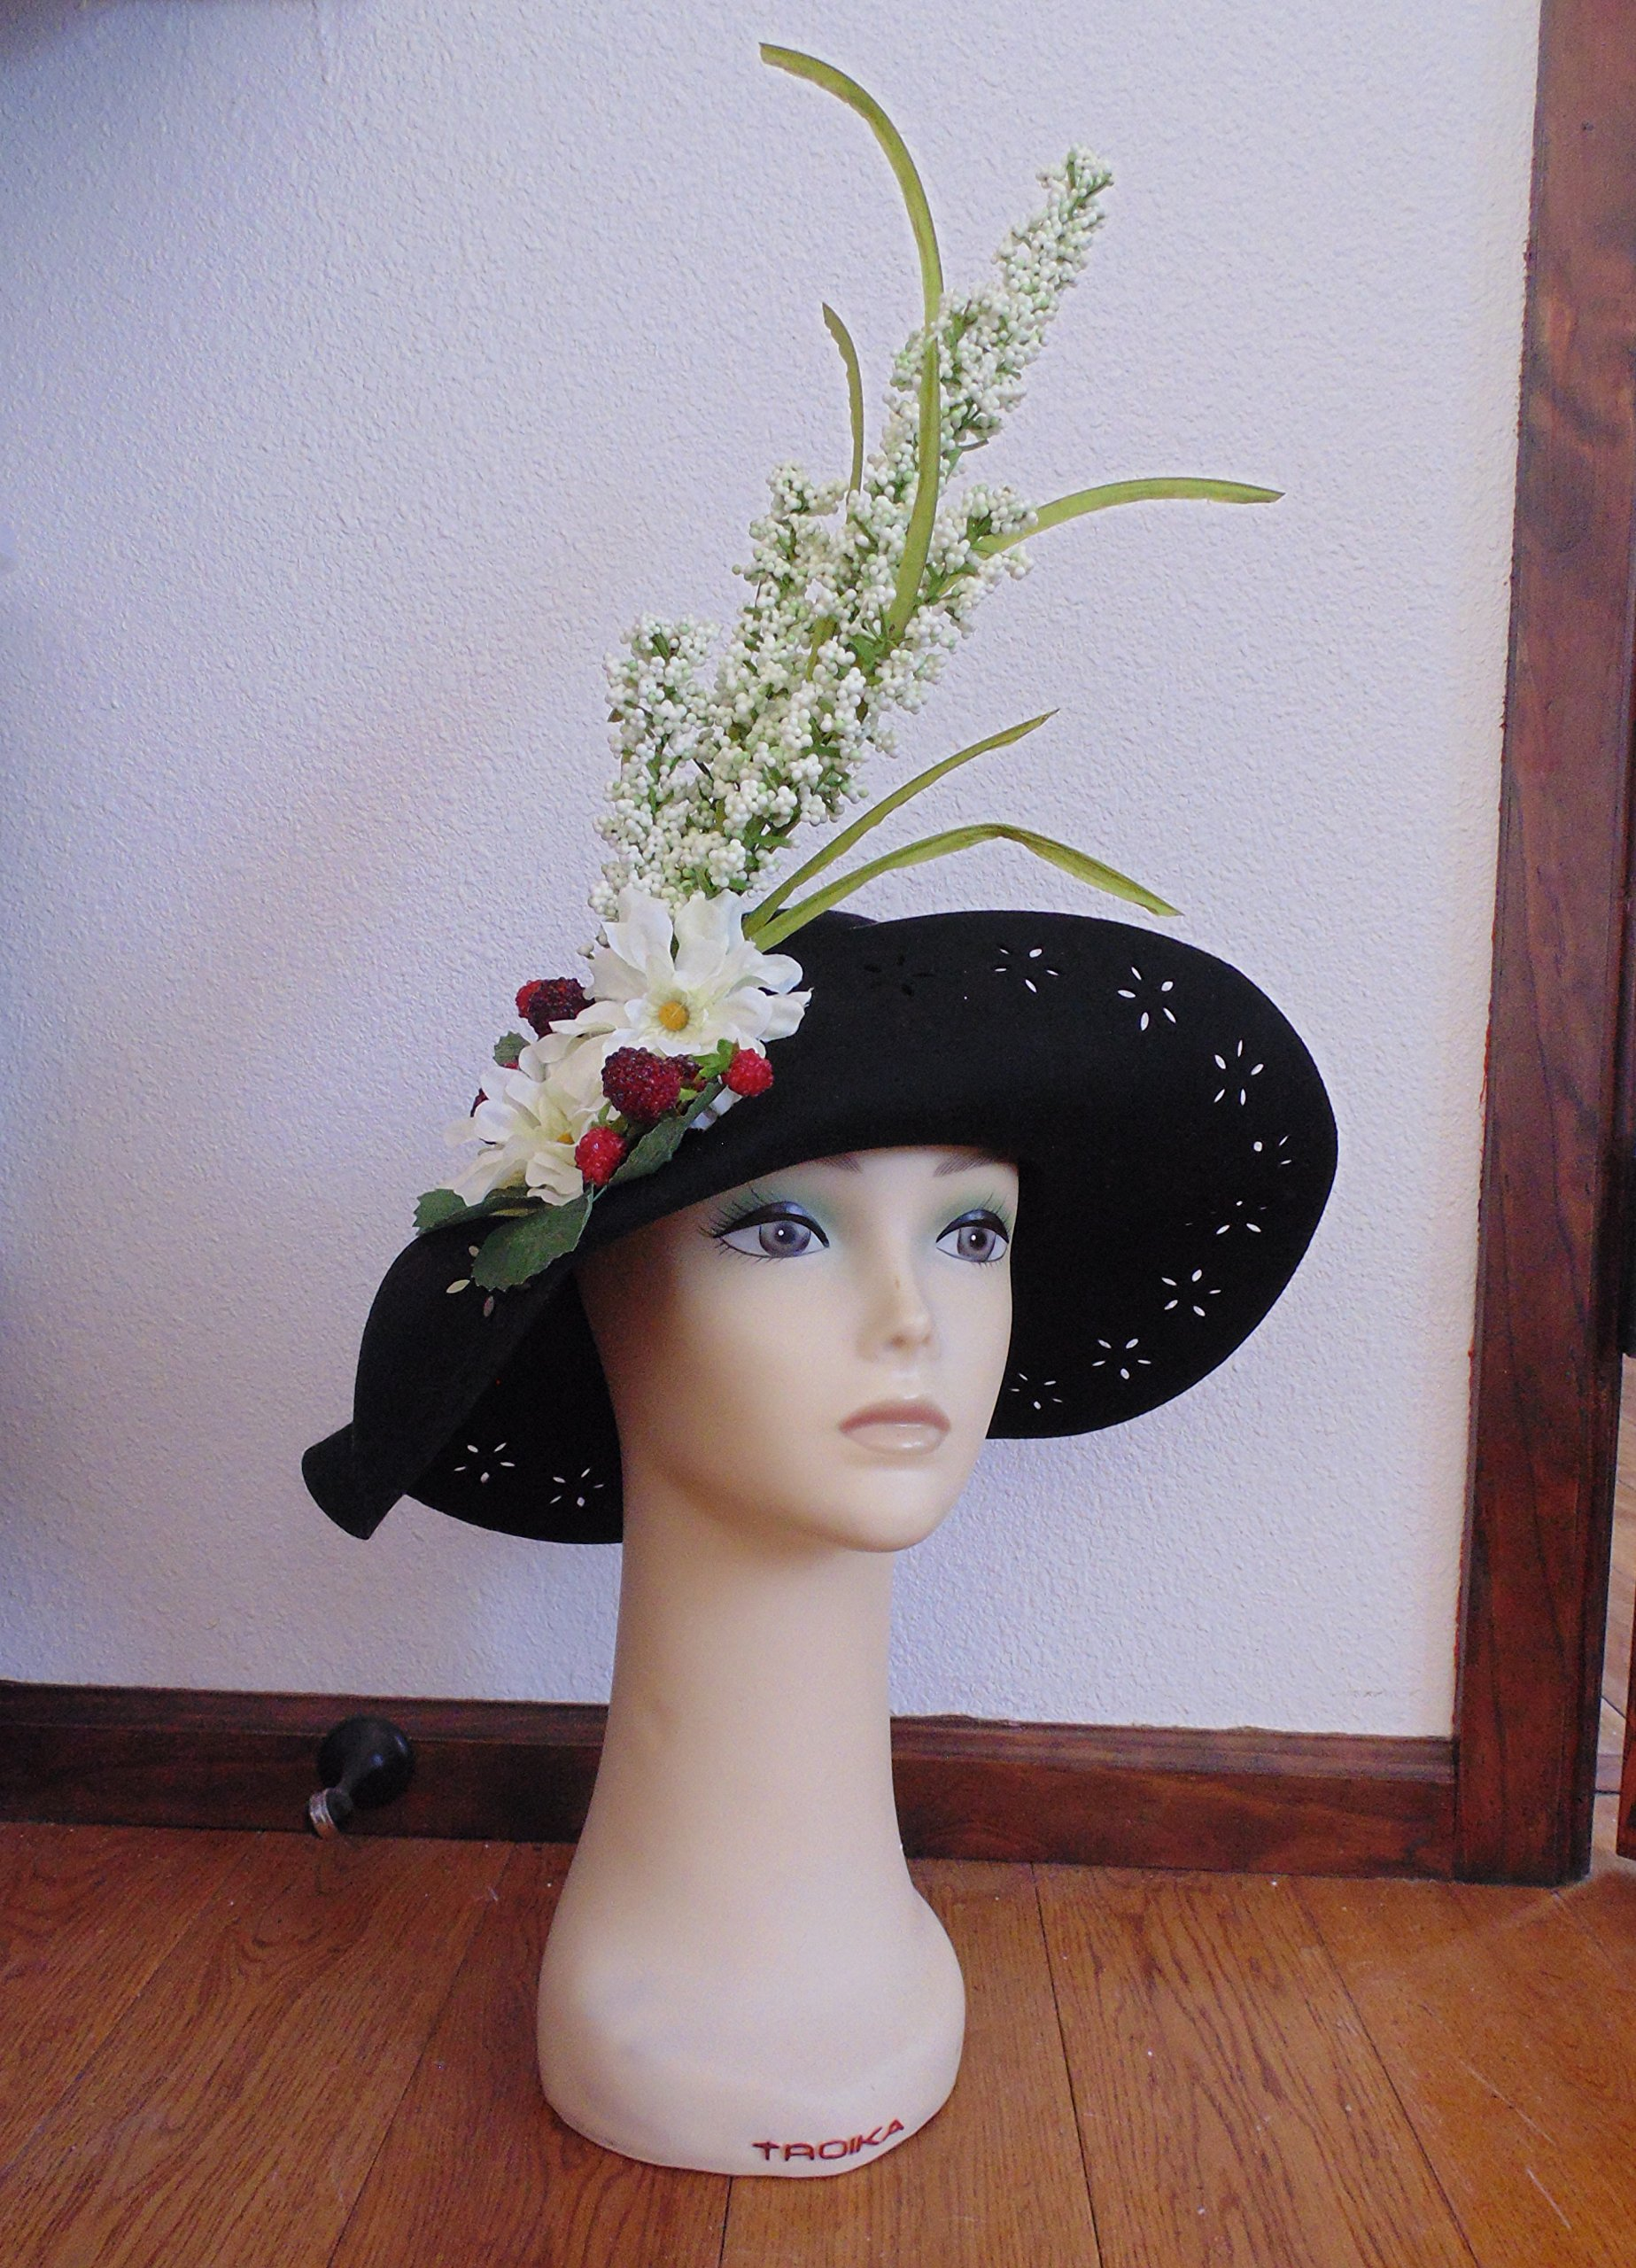 Shades of Black and red Derby hat with Flowers, cherries, and feathers!